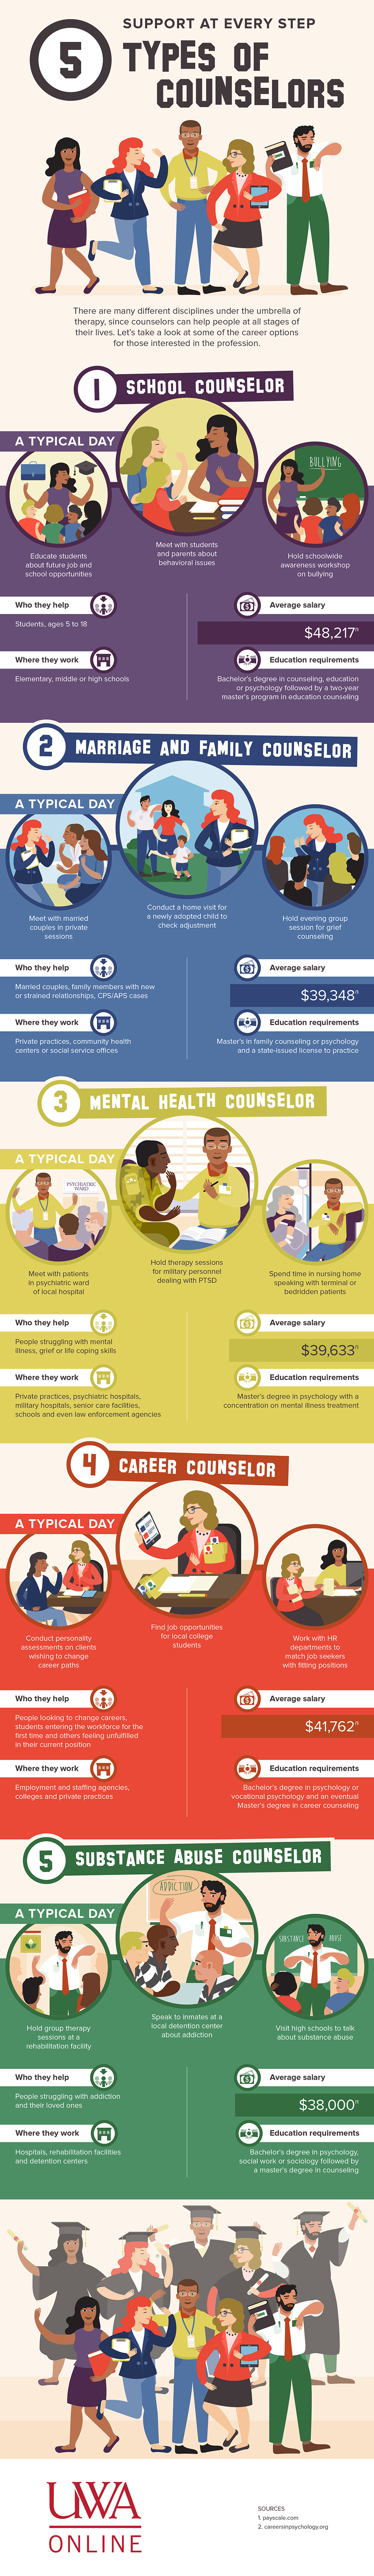 An illustrated infographic depicting five types of counselors, what they do, who they treat, and what salary averages can be expected for each role.